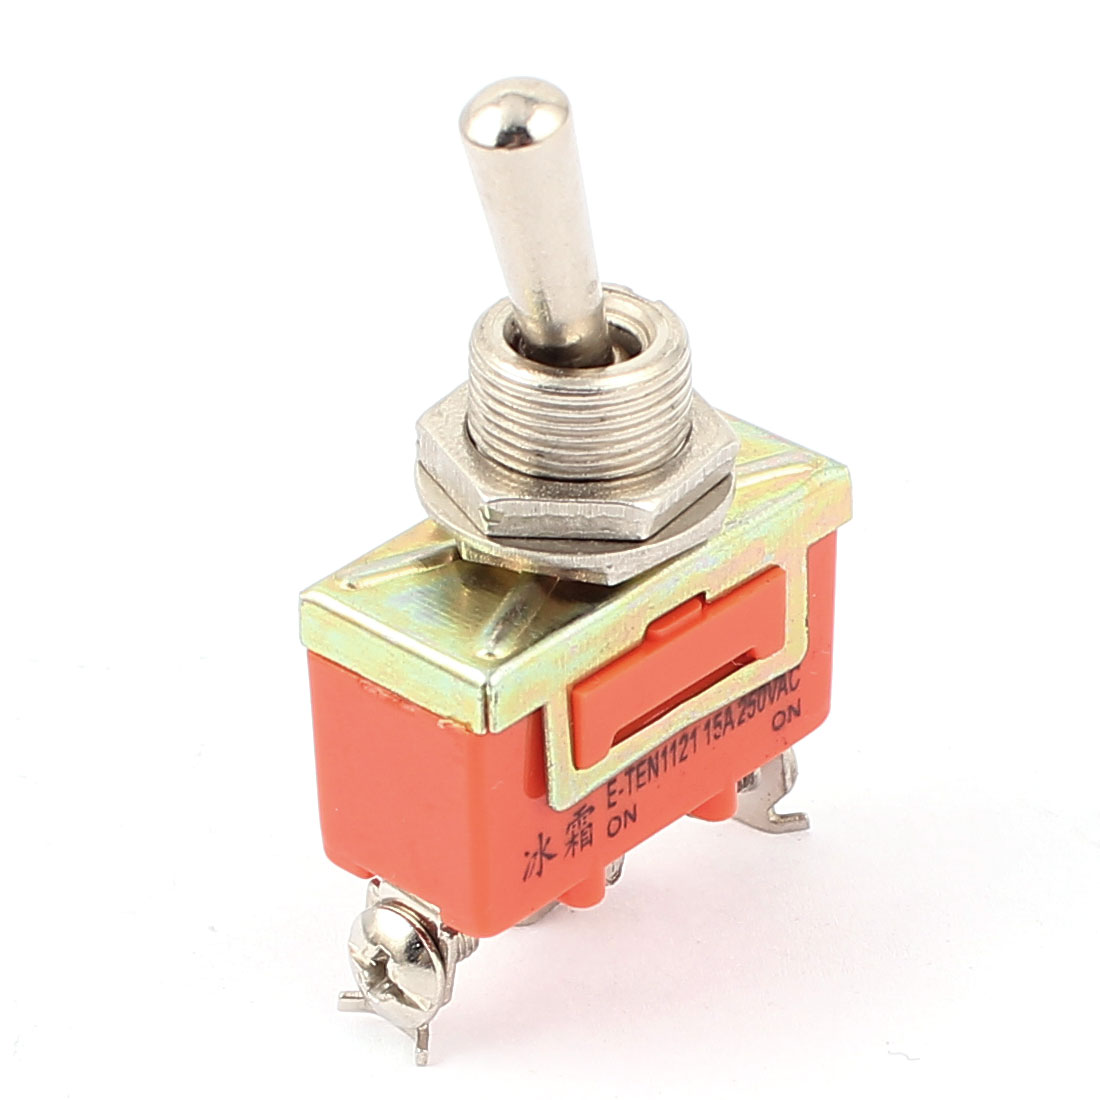 AC 250V 15A ON/ON 3 Terminals 2 Position SPDT Latching Toggle Switch